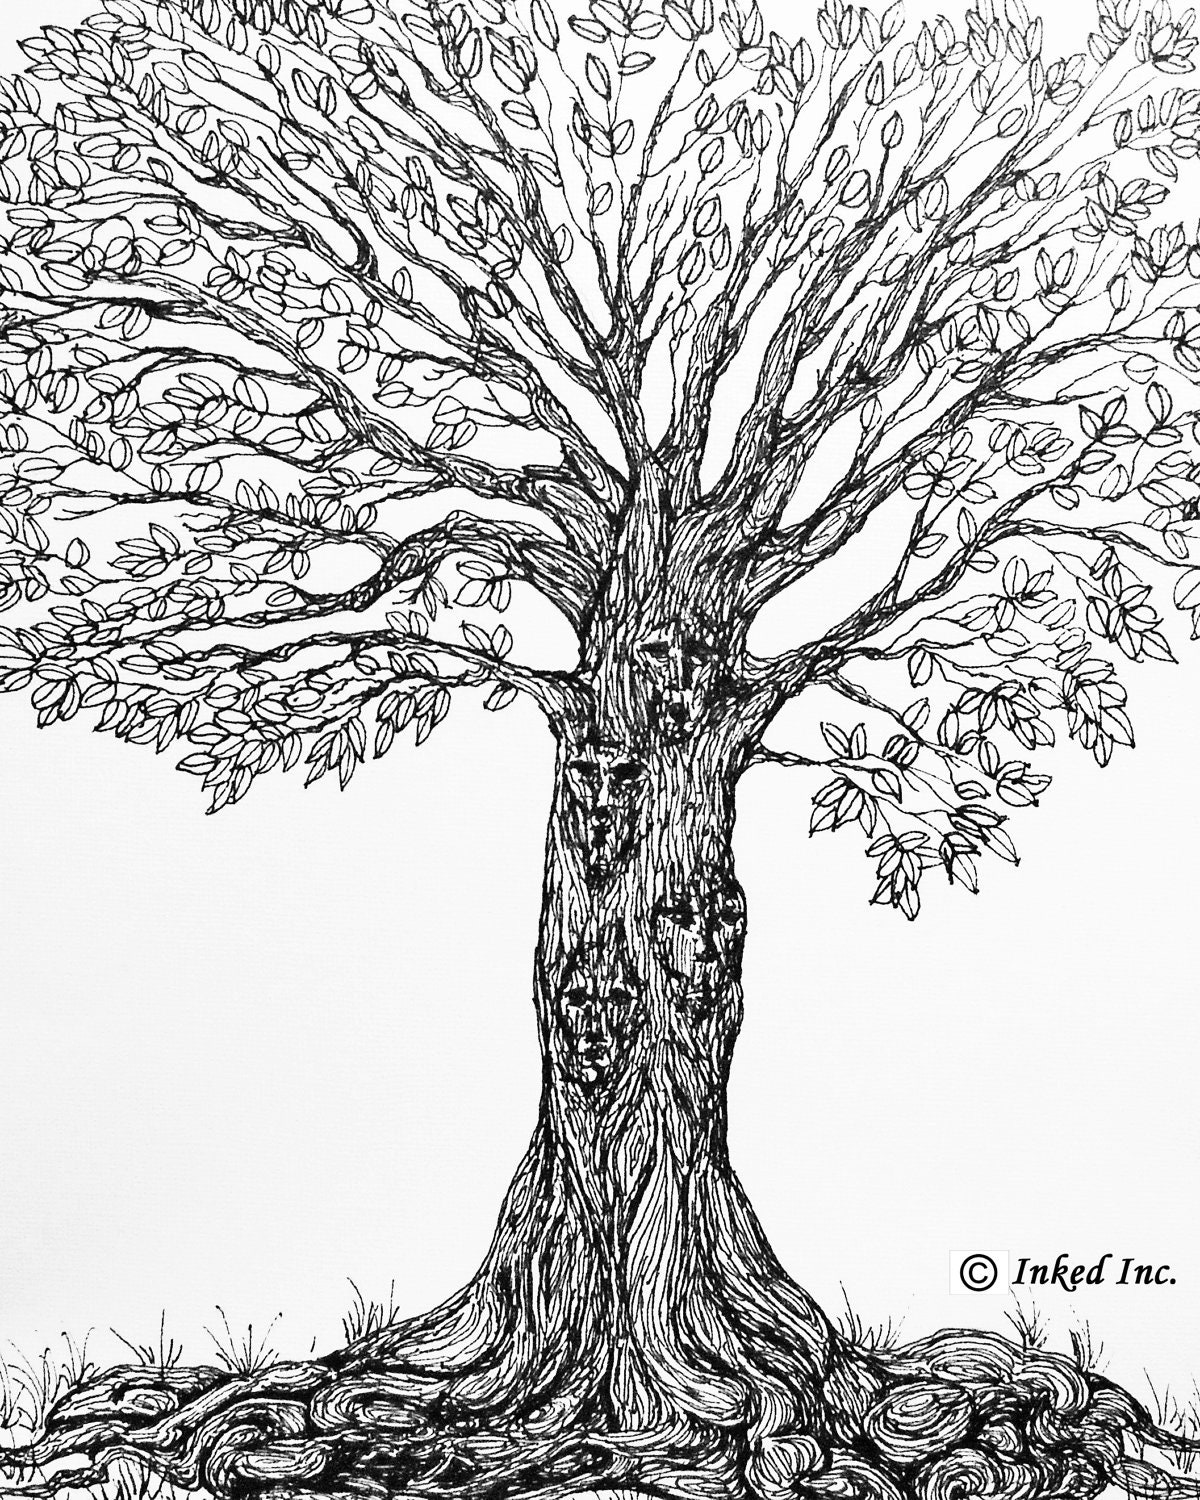 It's just an image of Tactueux Tree Pen Drawing